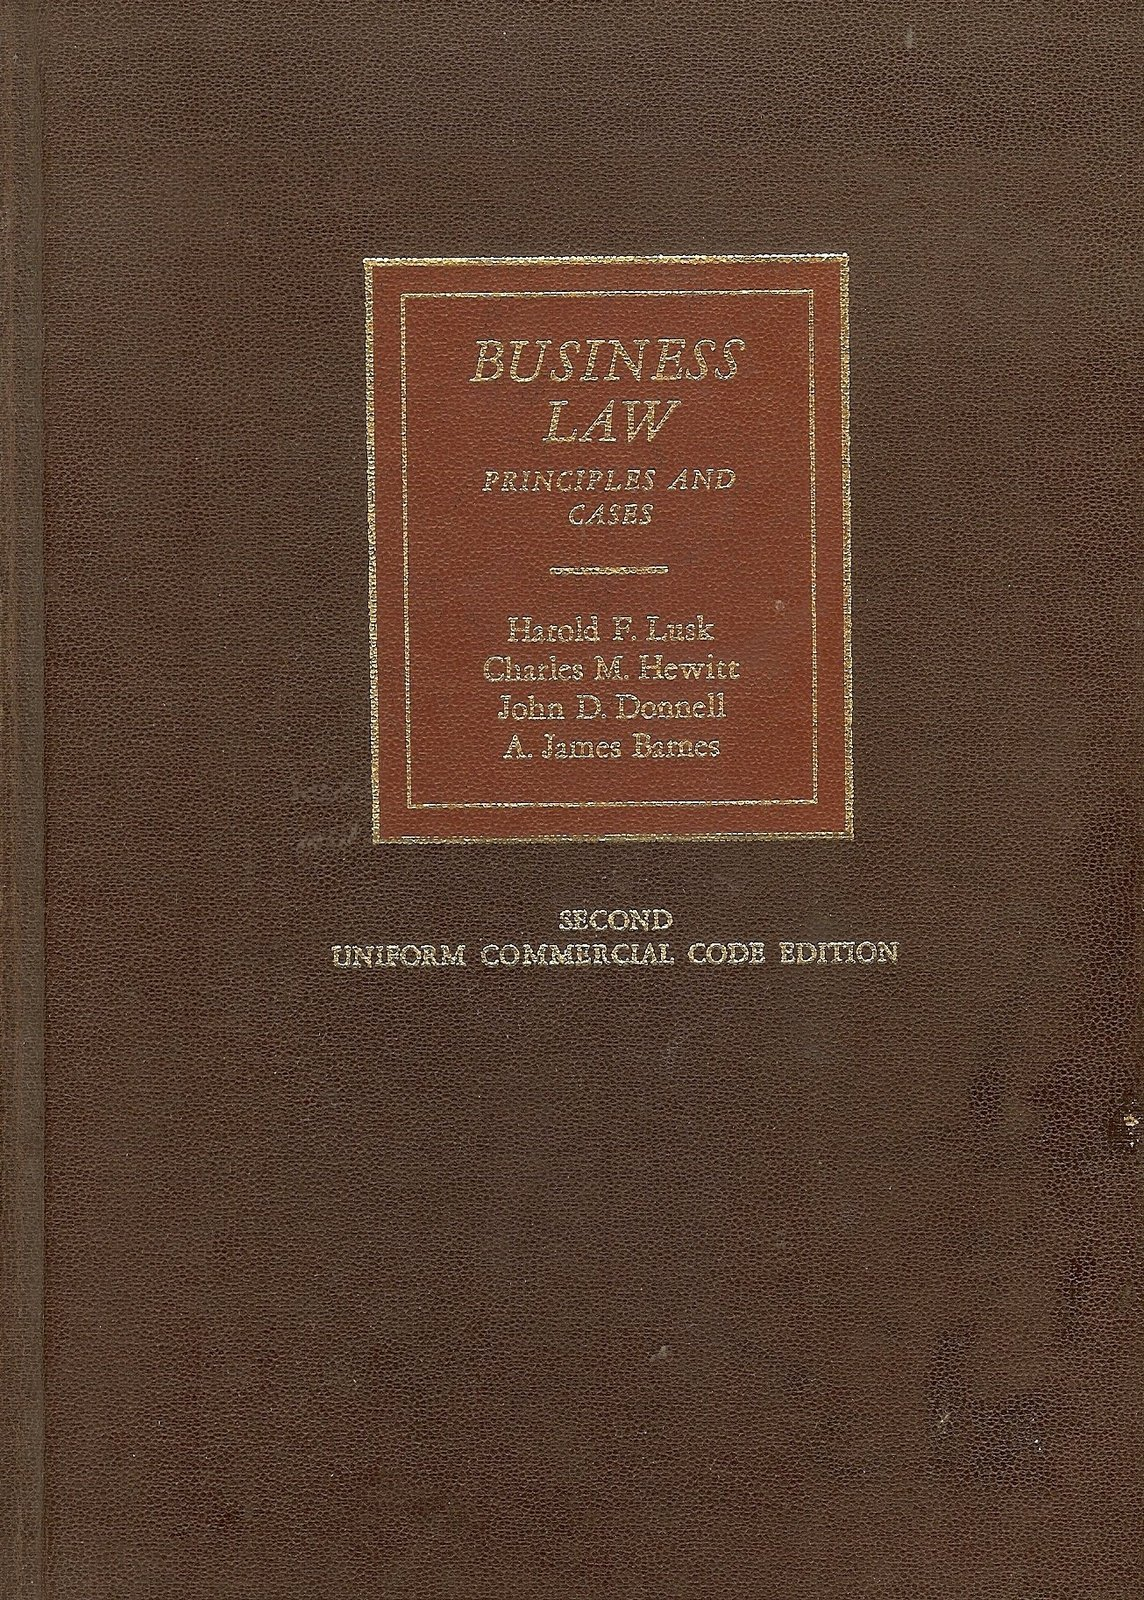 Uniform Commercial Code Edition Business Law Second Edition [Hardcover] [Jan 01,